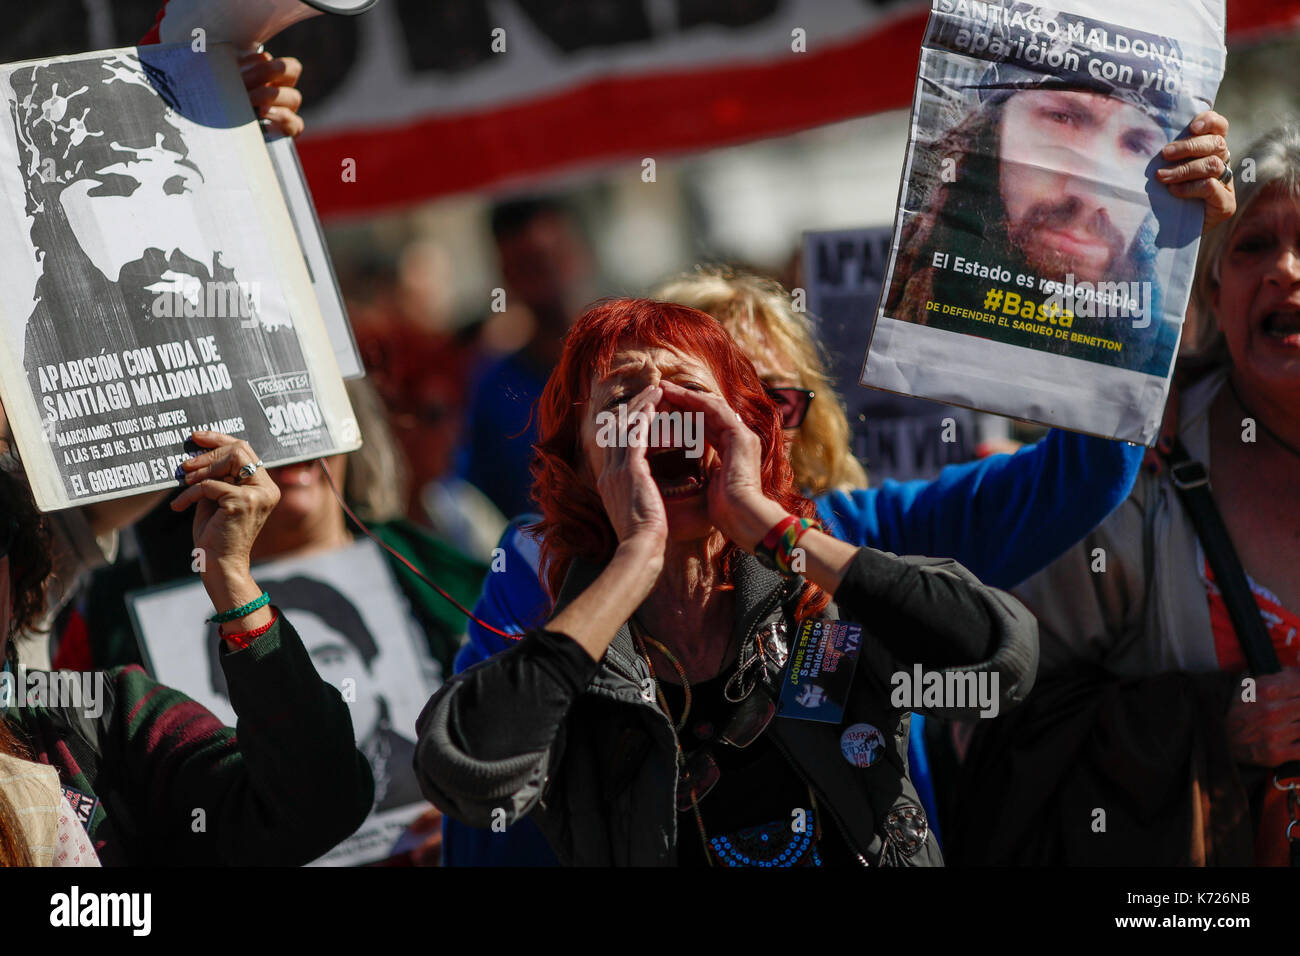 Protestors demand the reappearance of Santiago Maldonado during the traditional weekly protest against forced disappearance in Buenos Aires, Argentina, 14 September 2017. The news that the young artisan who protested for the 'mapuches' went missing got out a month ago. EFE/David Fernandez - Stock Image